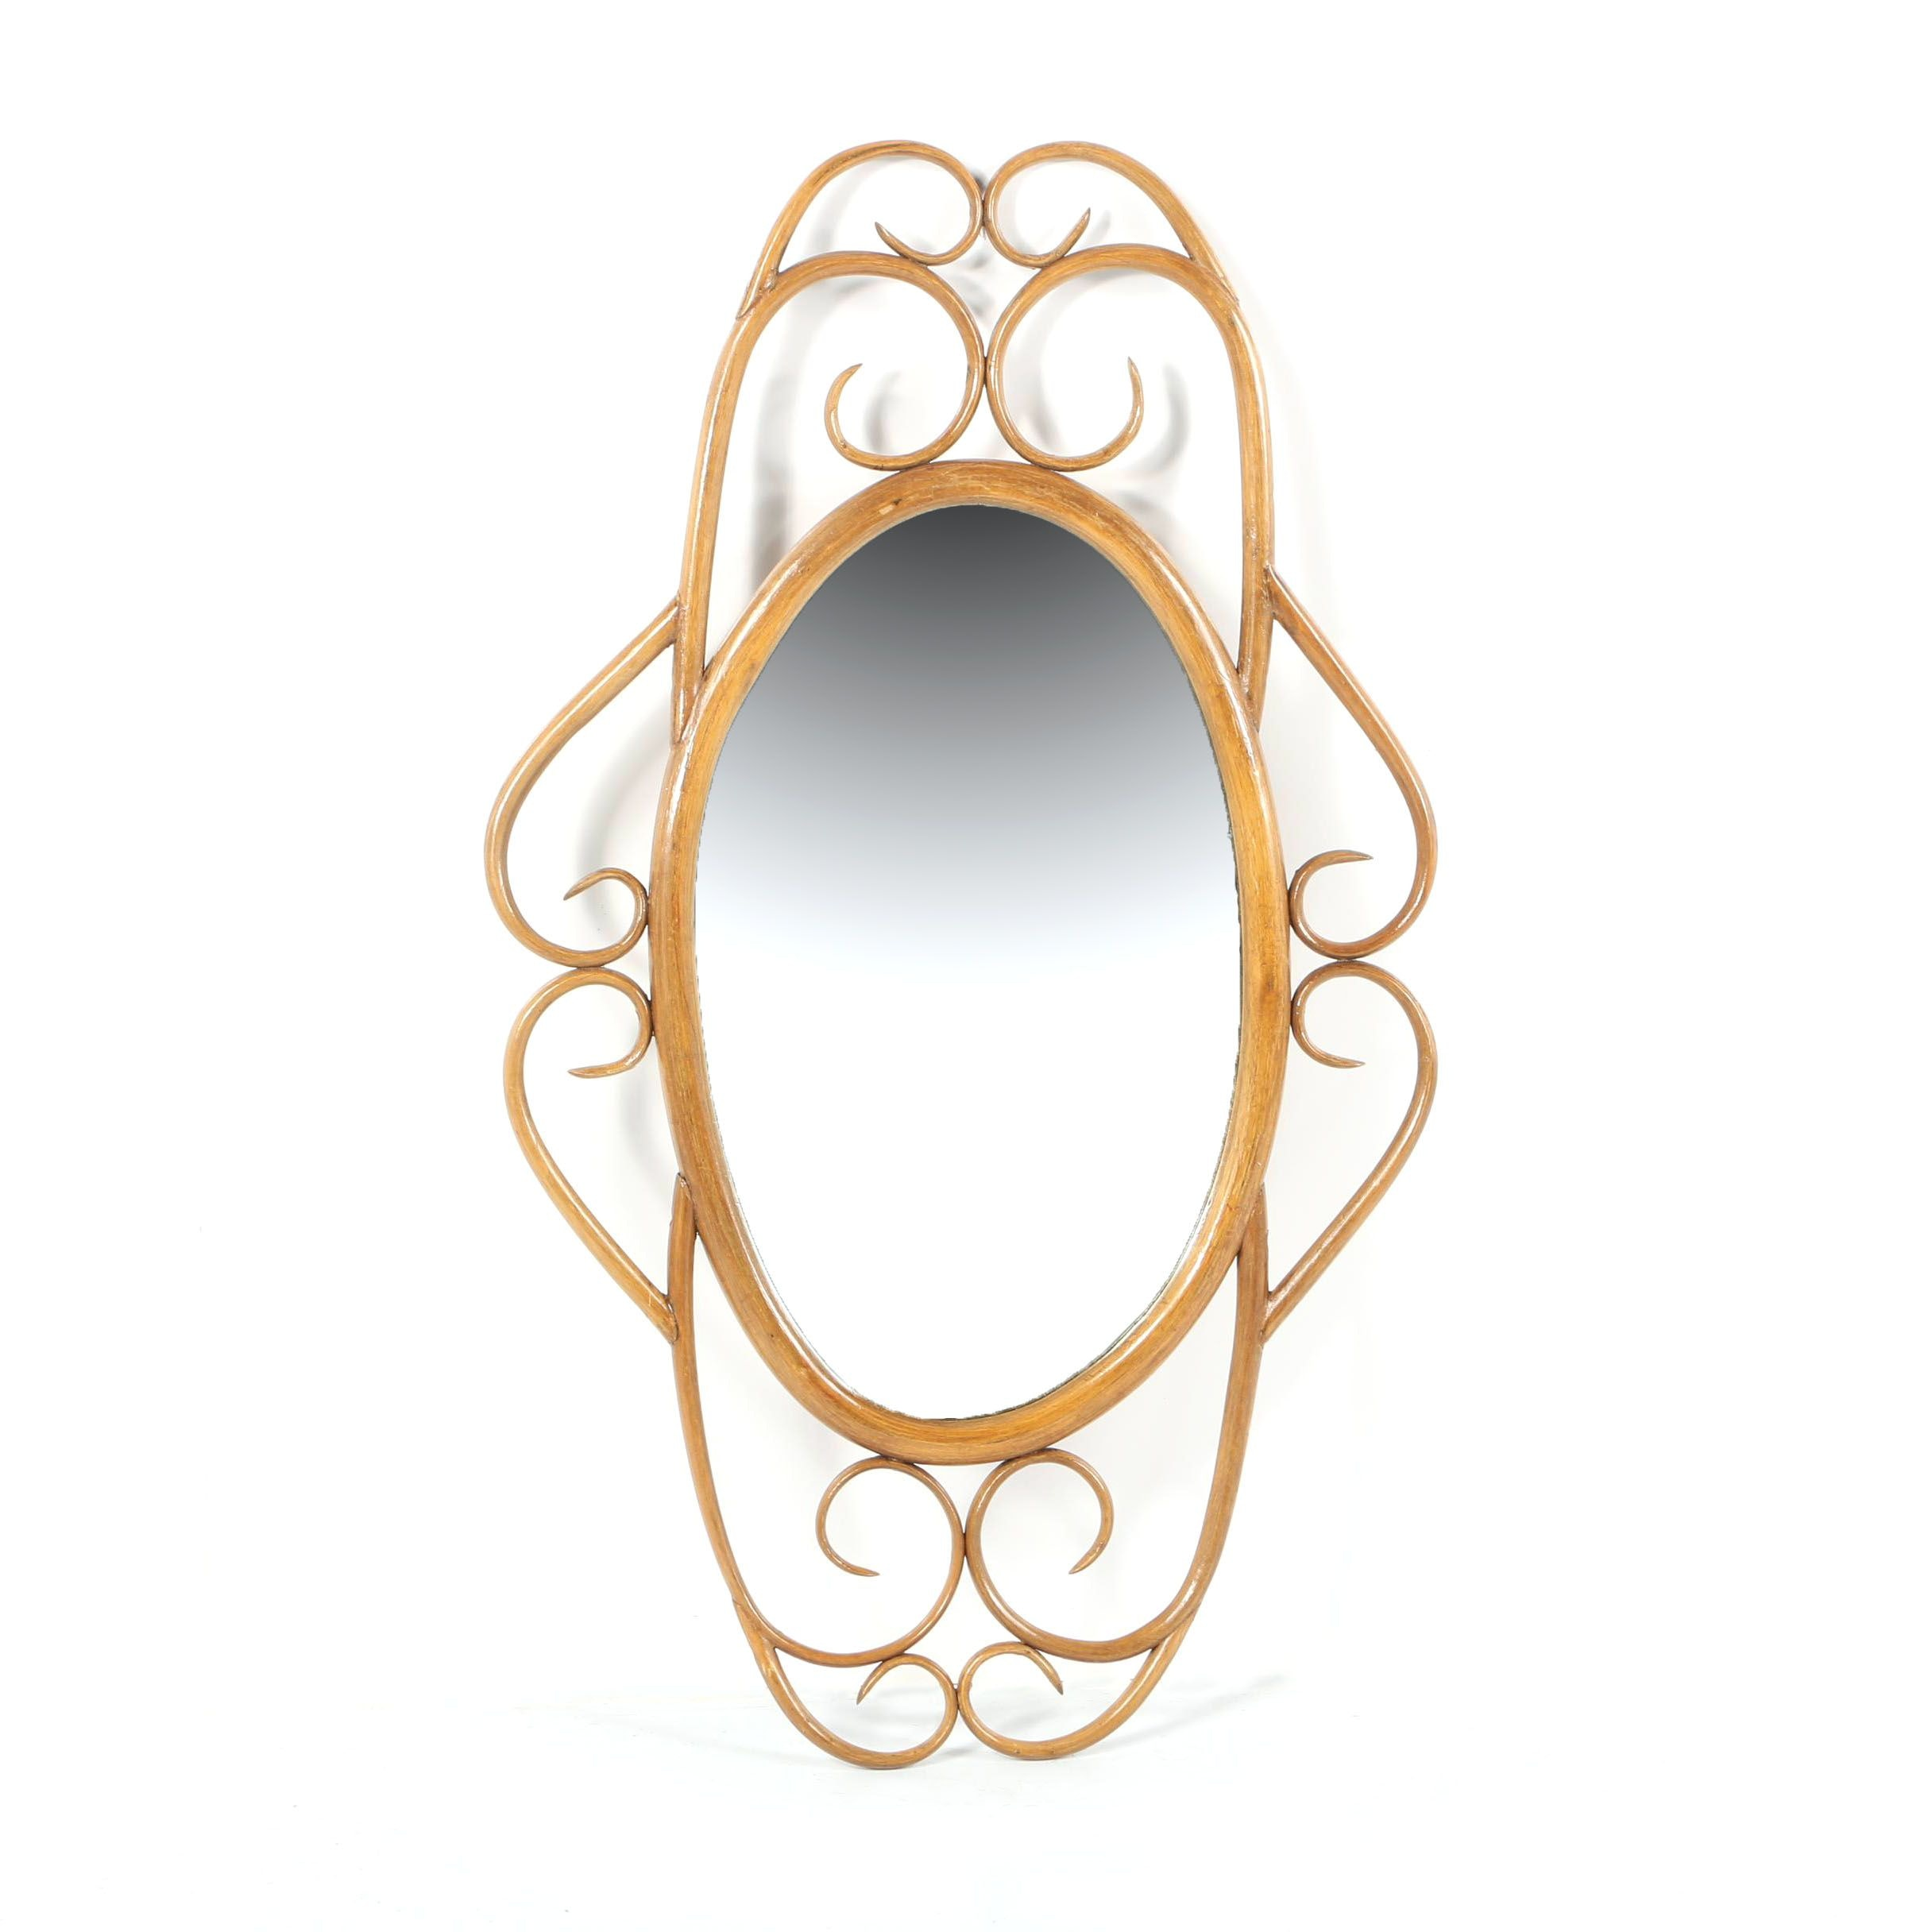 Vintage Scrolling Bentwood Framed Oval Wall Mirror